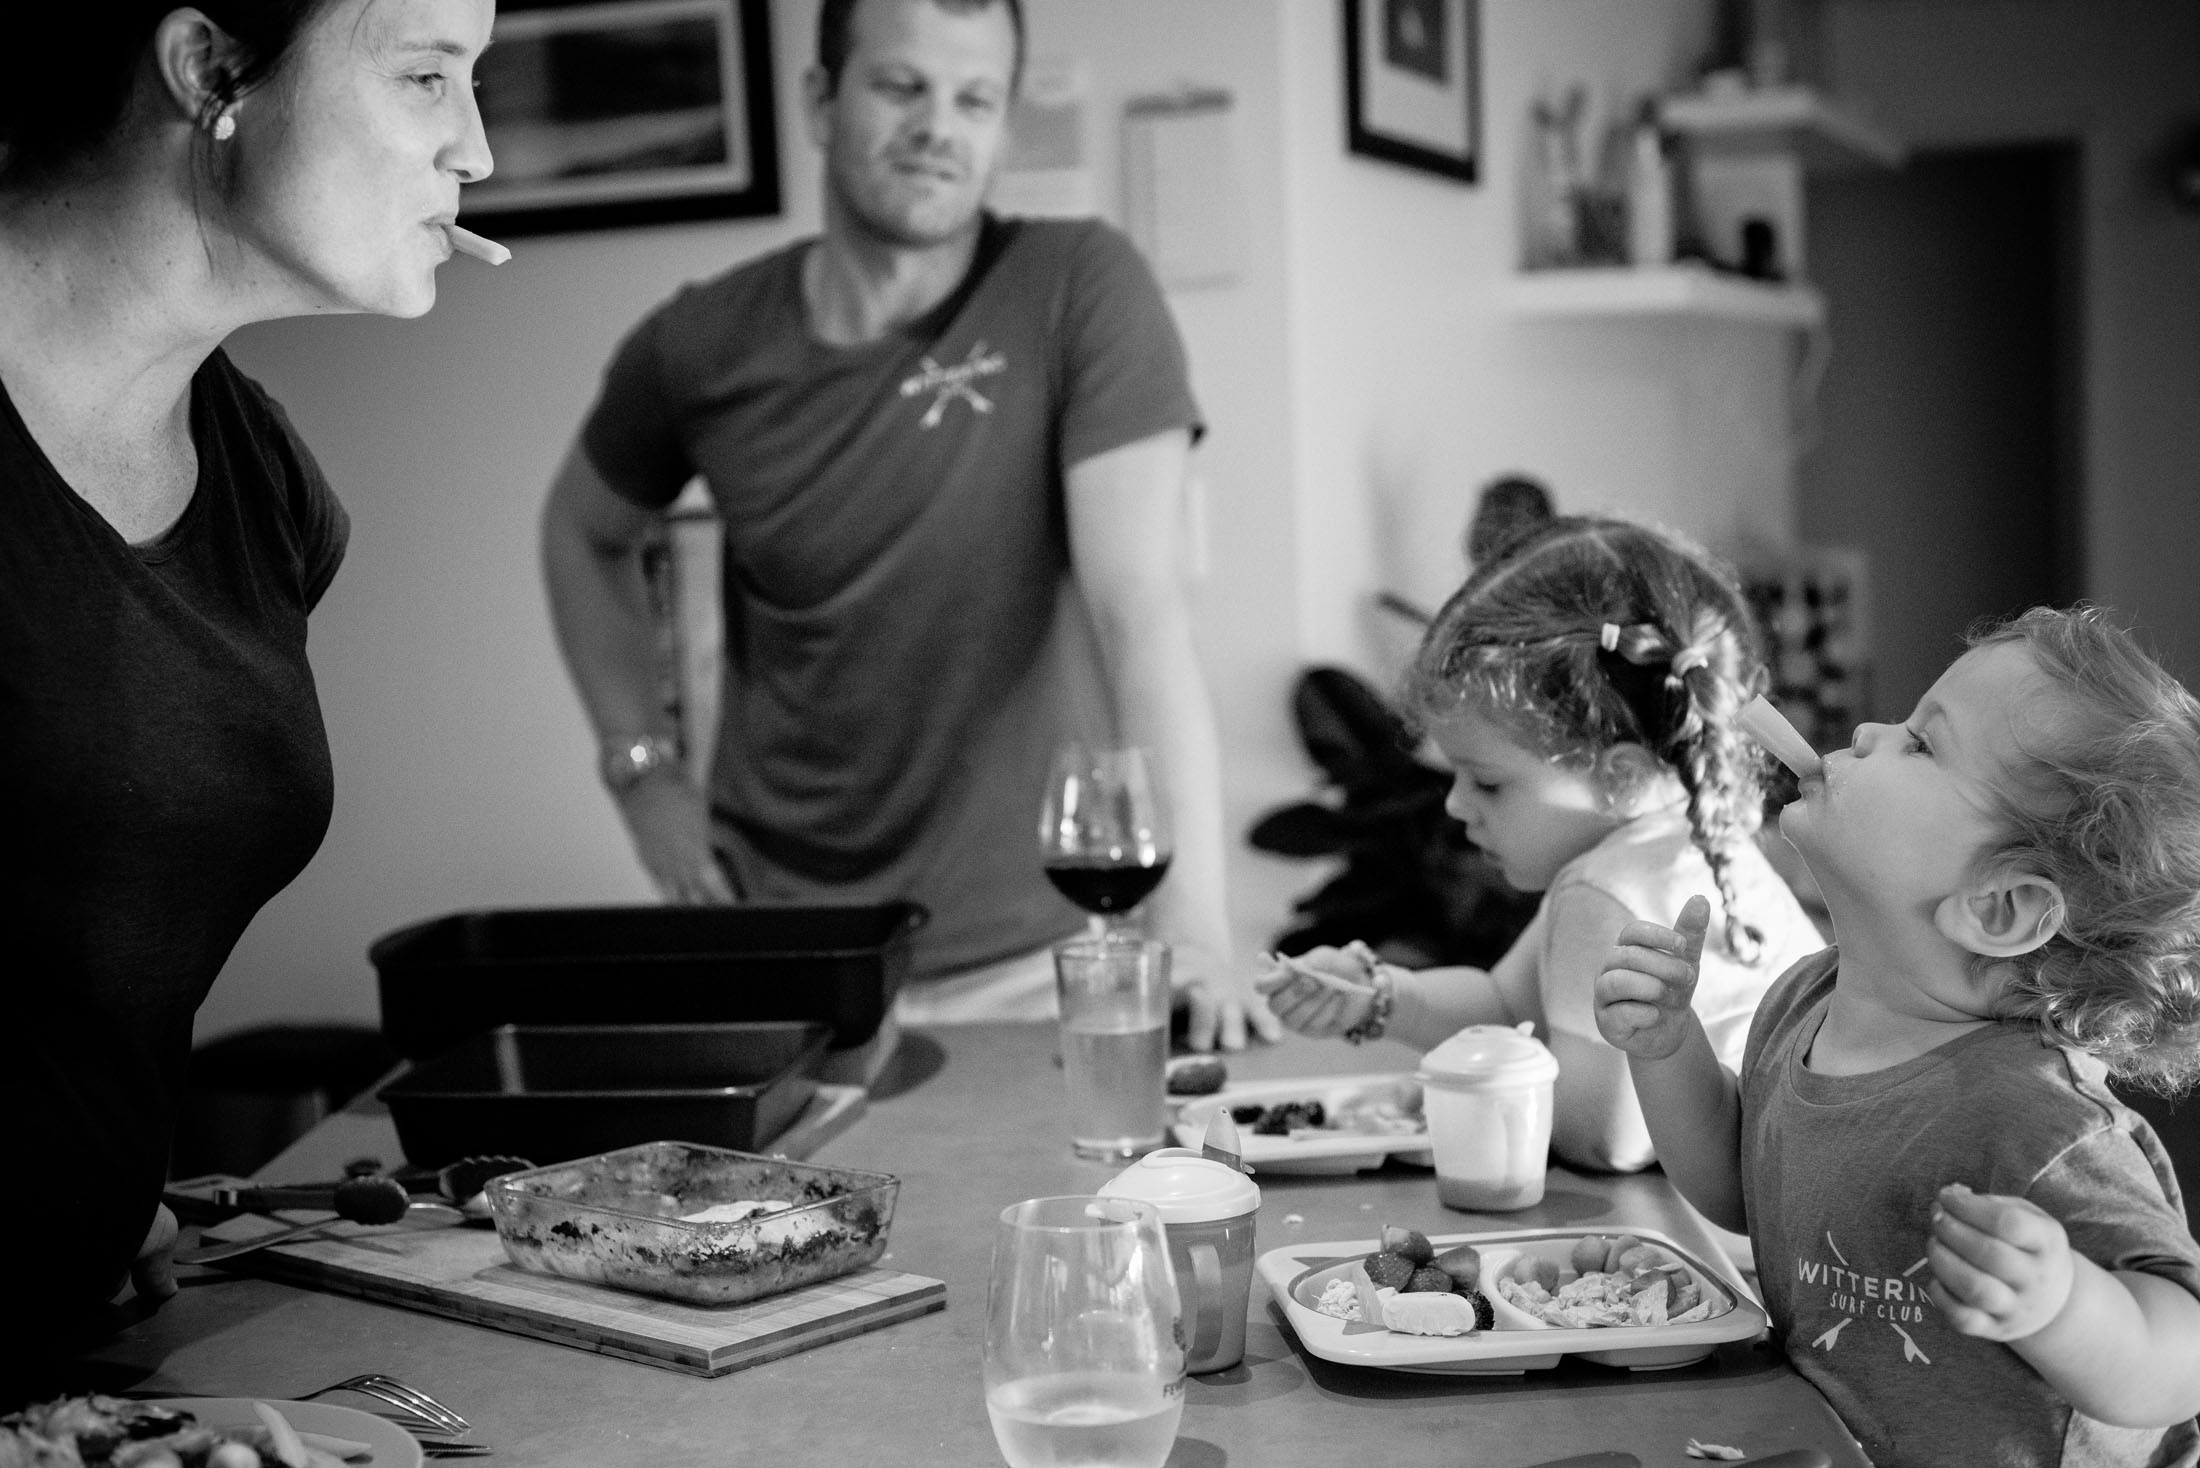 West_Family-Photography-unposed17.JPG